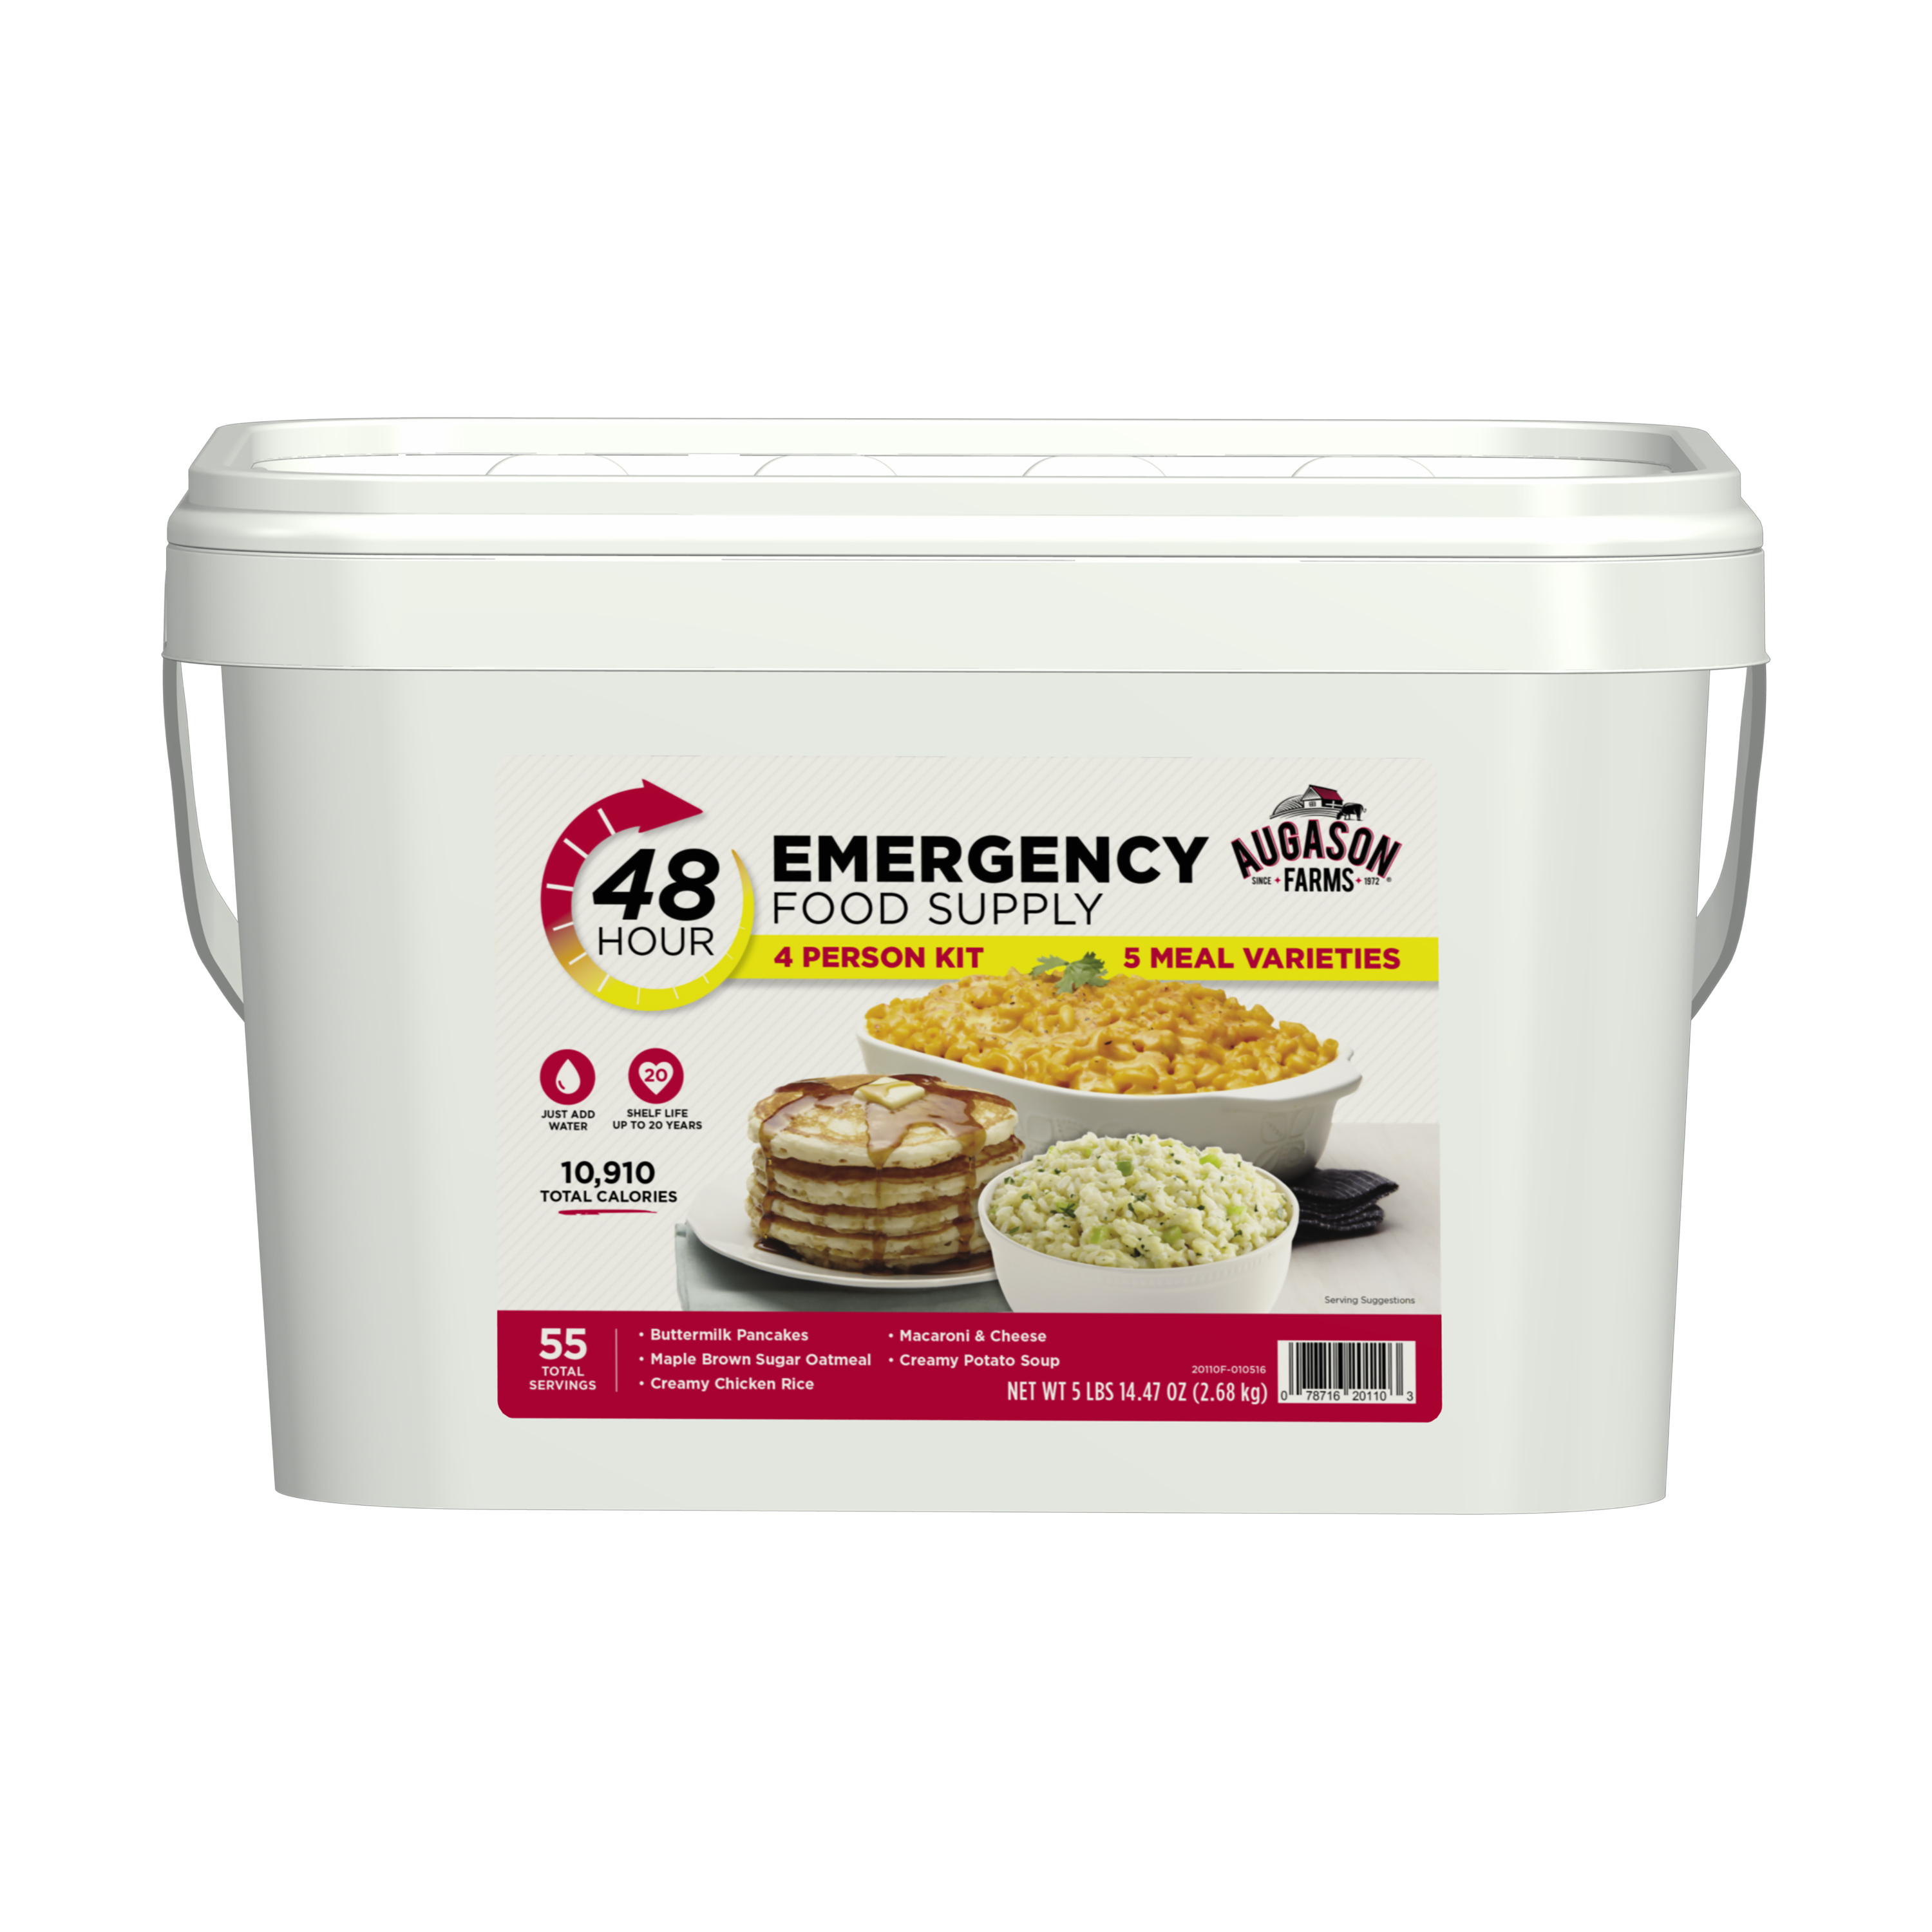 Augason Farms 48-Hour Emergency Food Supply 4 Person Kit, 5 lbs 14.47 oz